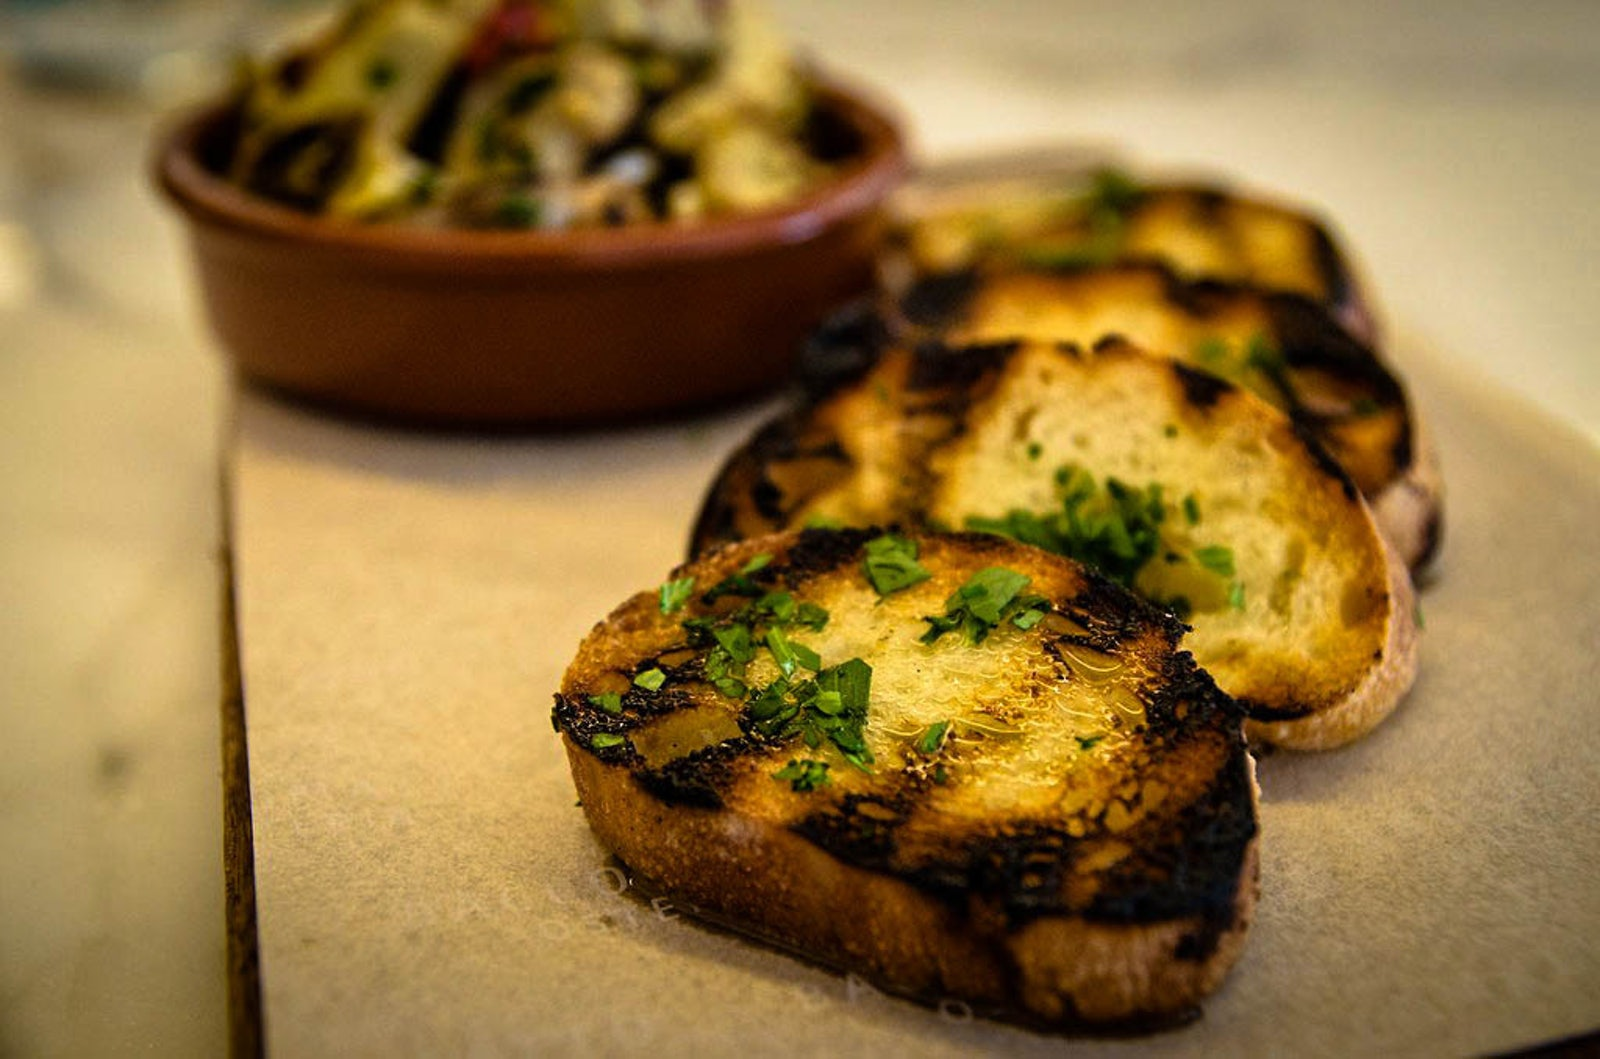 A picture of Garlic Bread from Cambridge Hotel Italian restaurant in Surry Hills